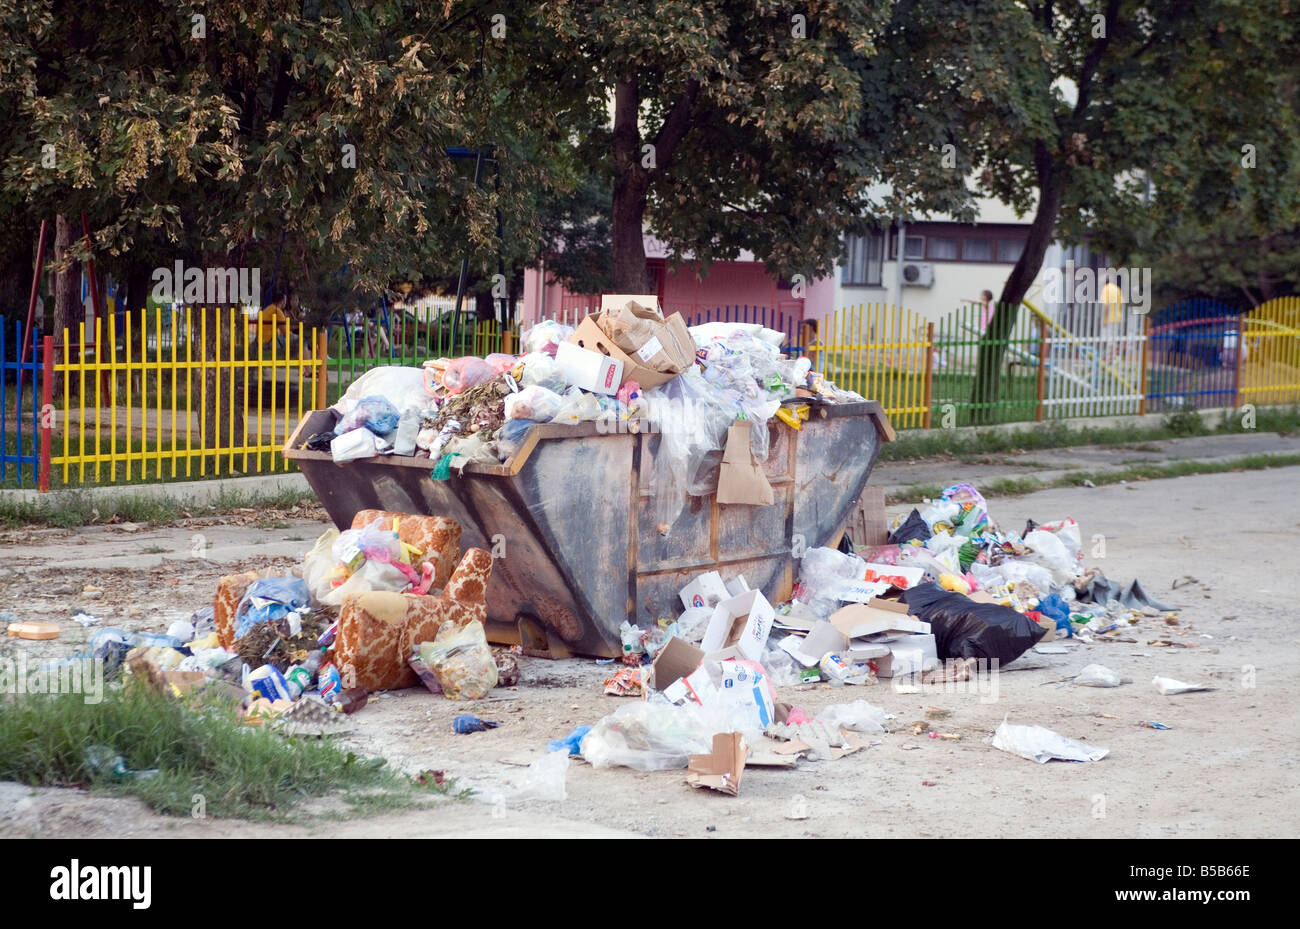 Overfilled garbage container in a back street in Banja Luka Republic of Srpska Bosnia and Herzegovina - Stock Image